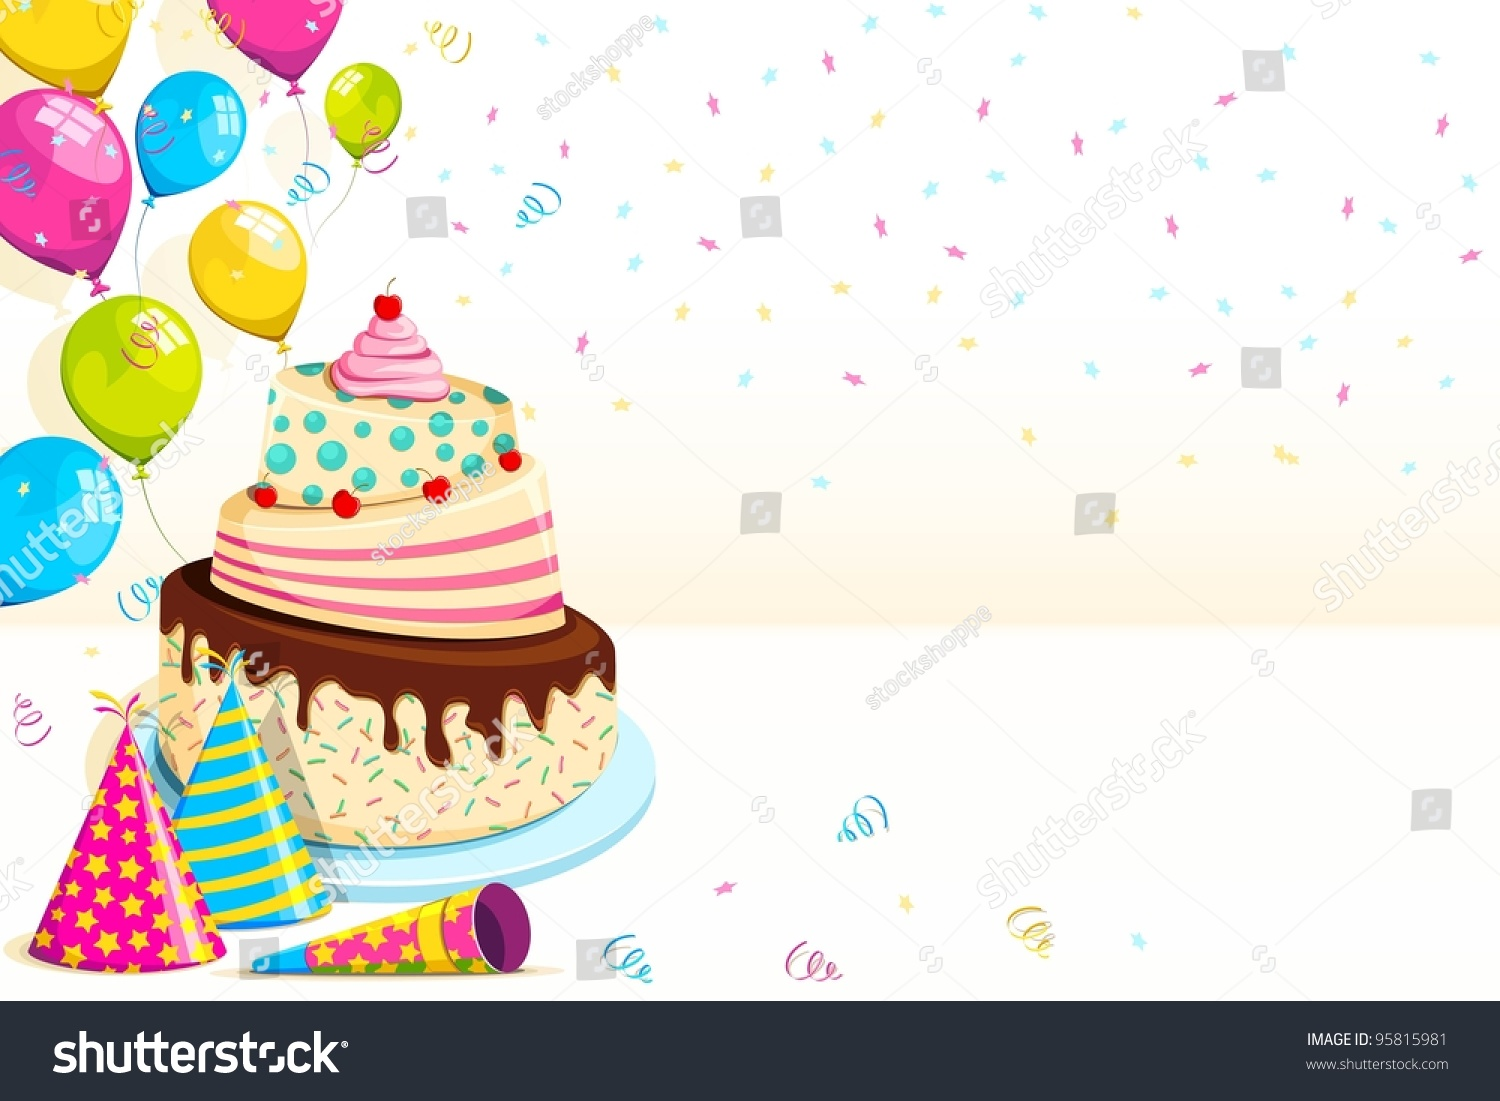 Vector Illustration Happy Birthday Background Cake Stock Vector 95815981